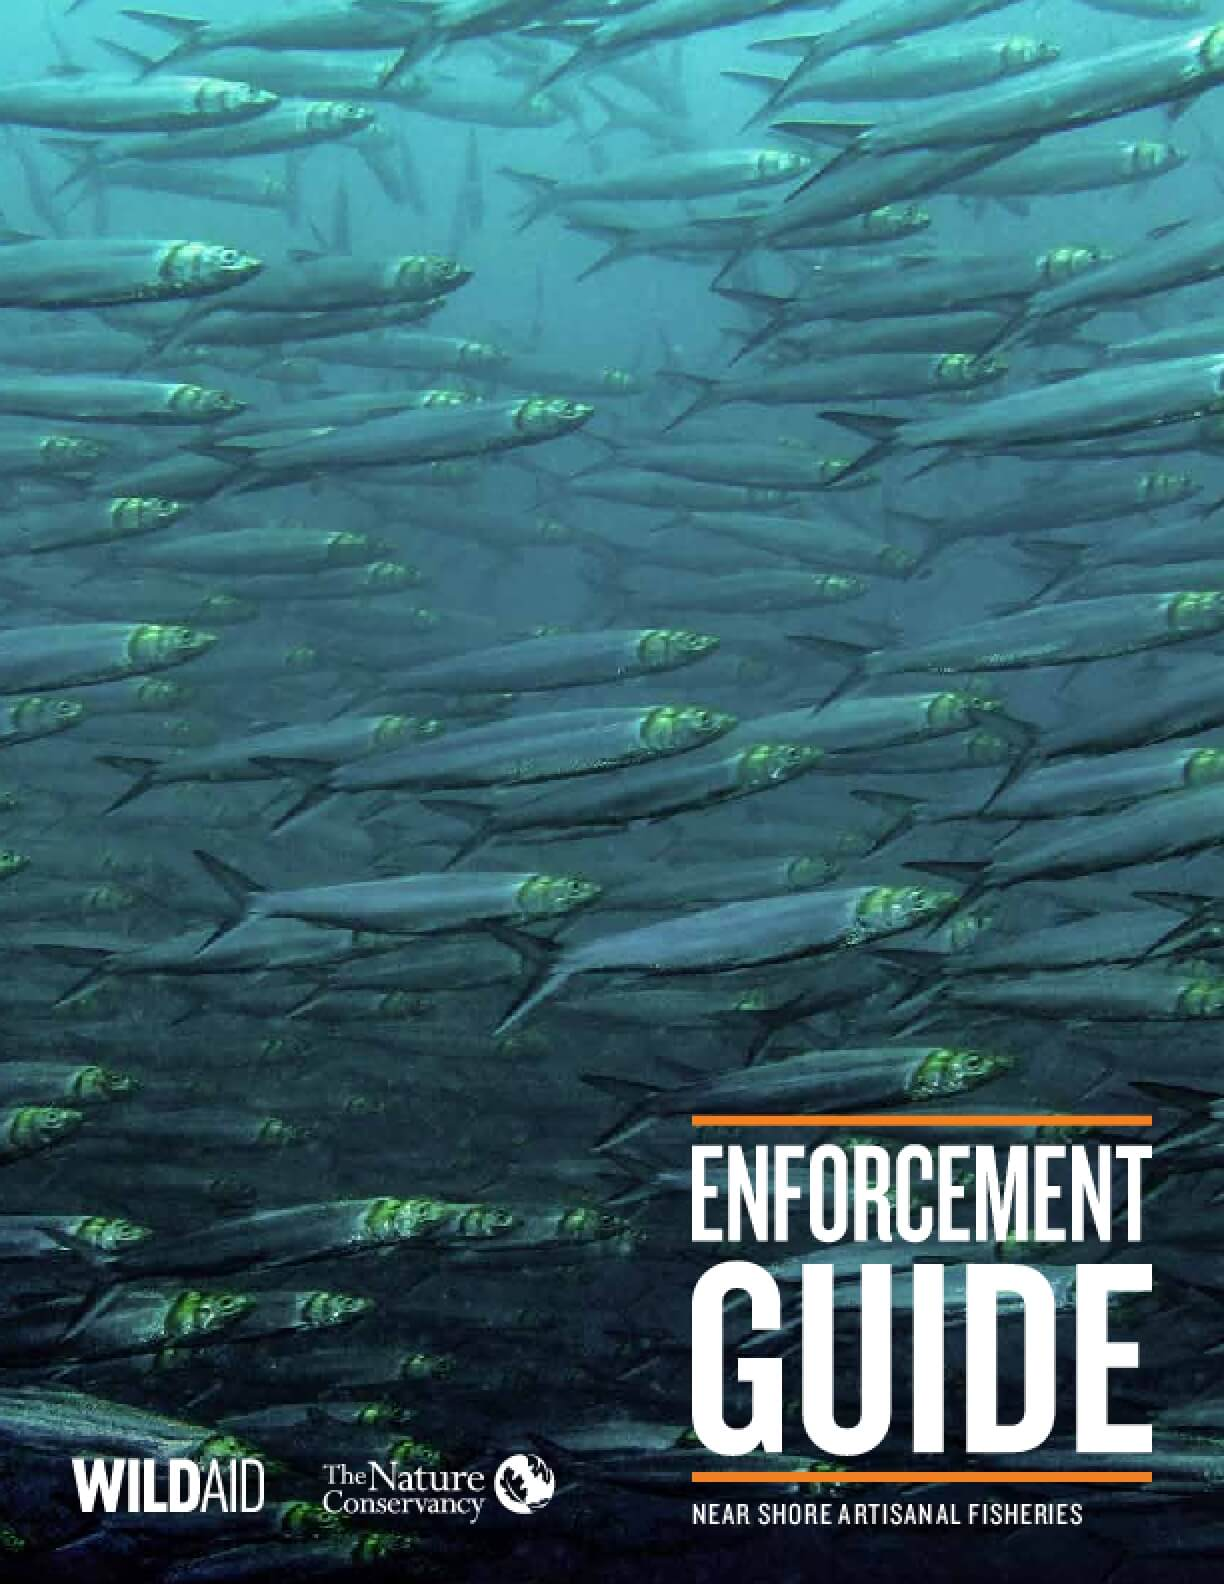 Enforcement Guide: Near Shore Artisanal Fisheries